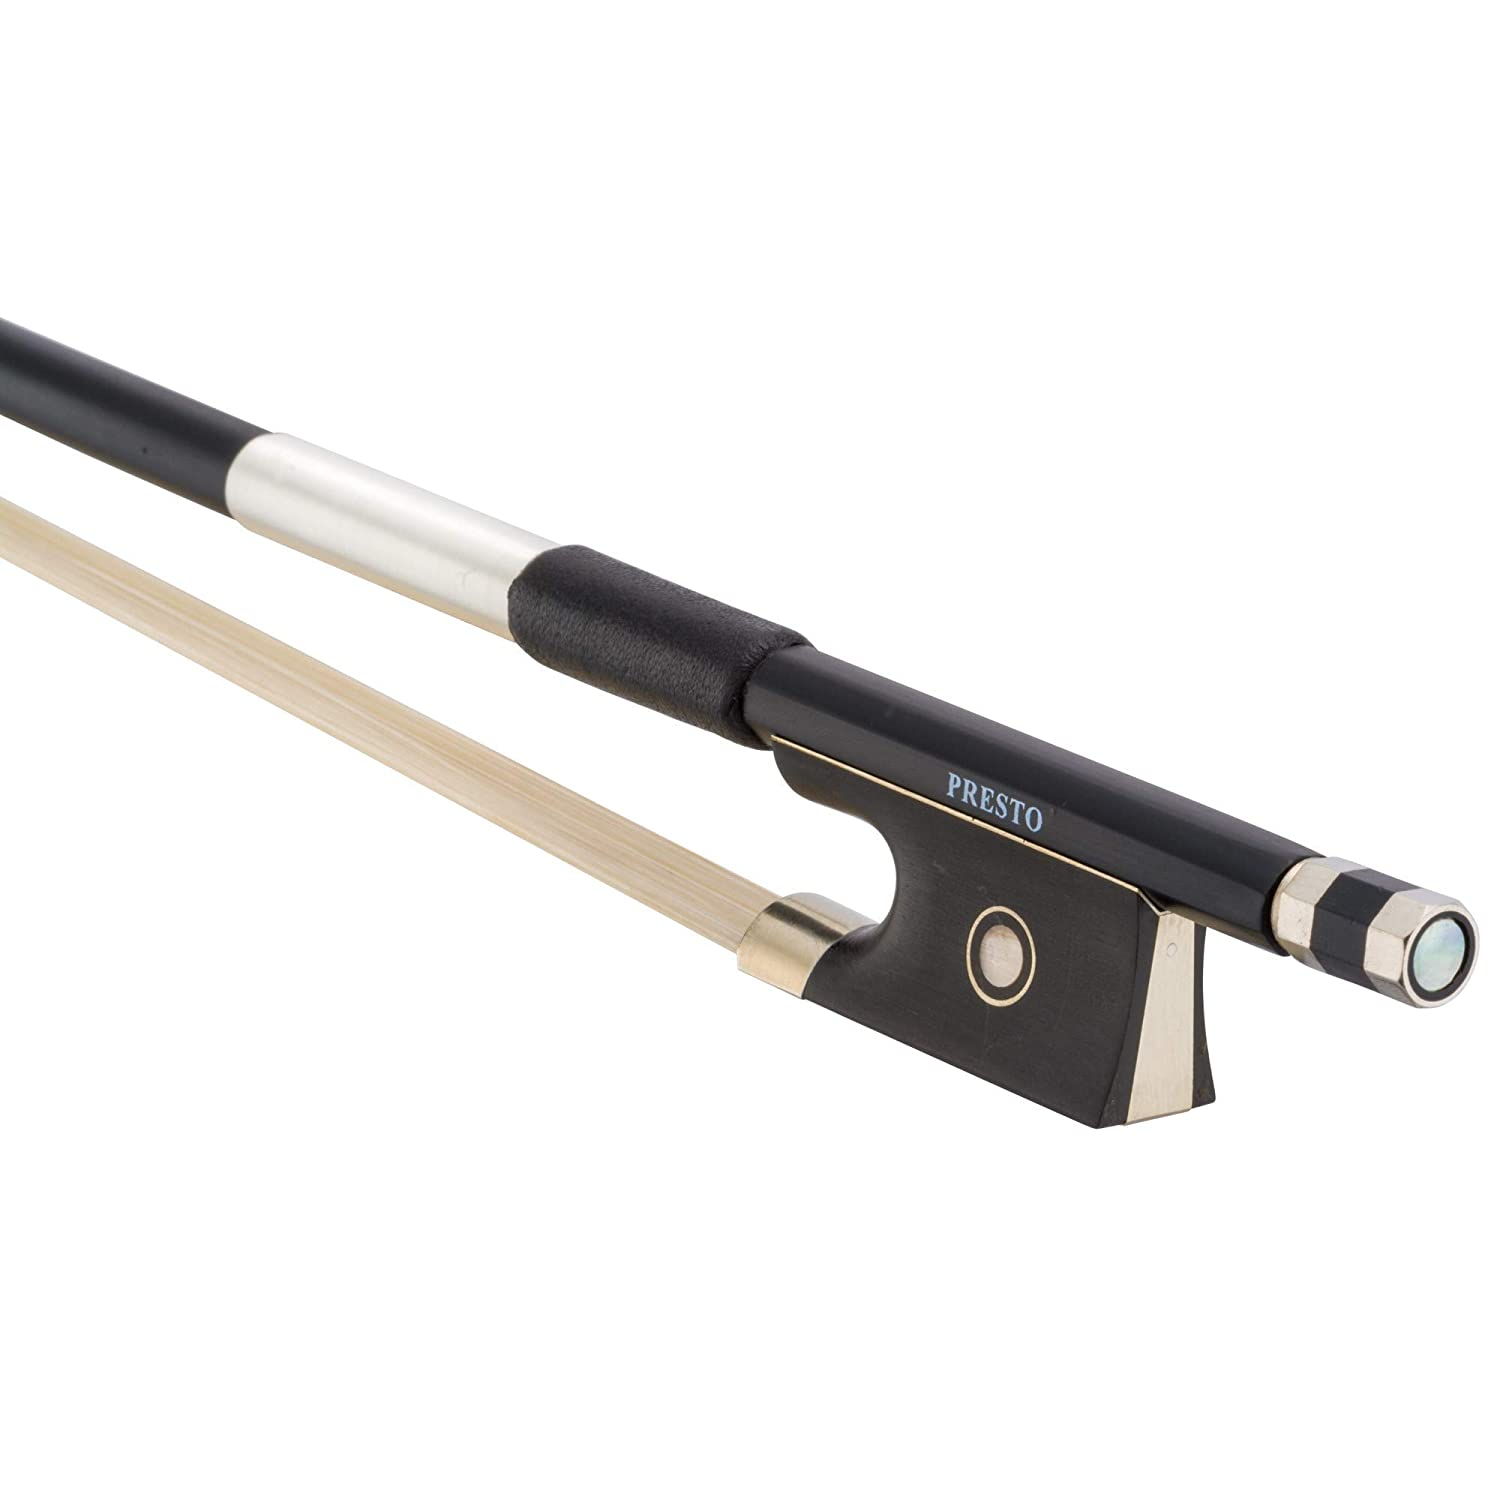 Top 15 Best Violin Bows Reviews in 2020 Should You Consider 12